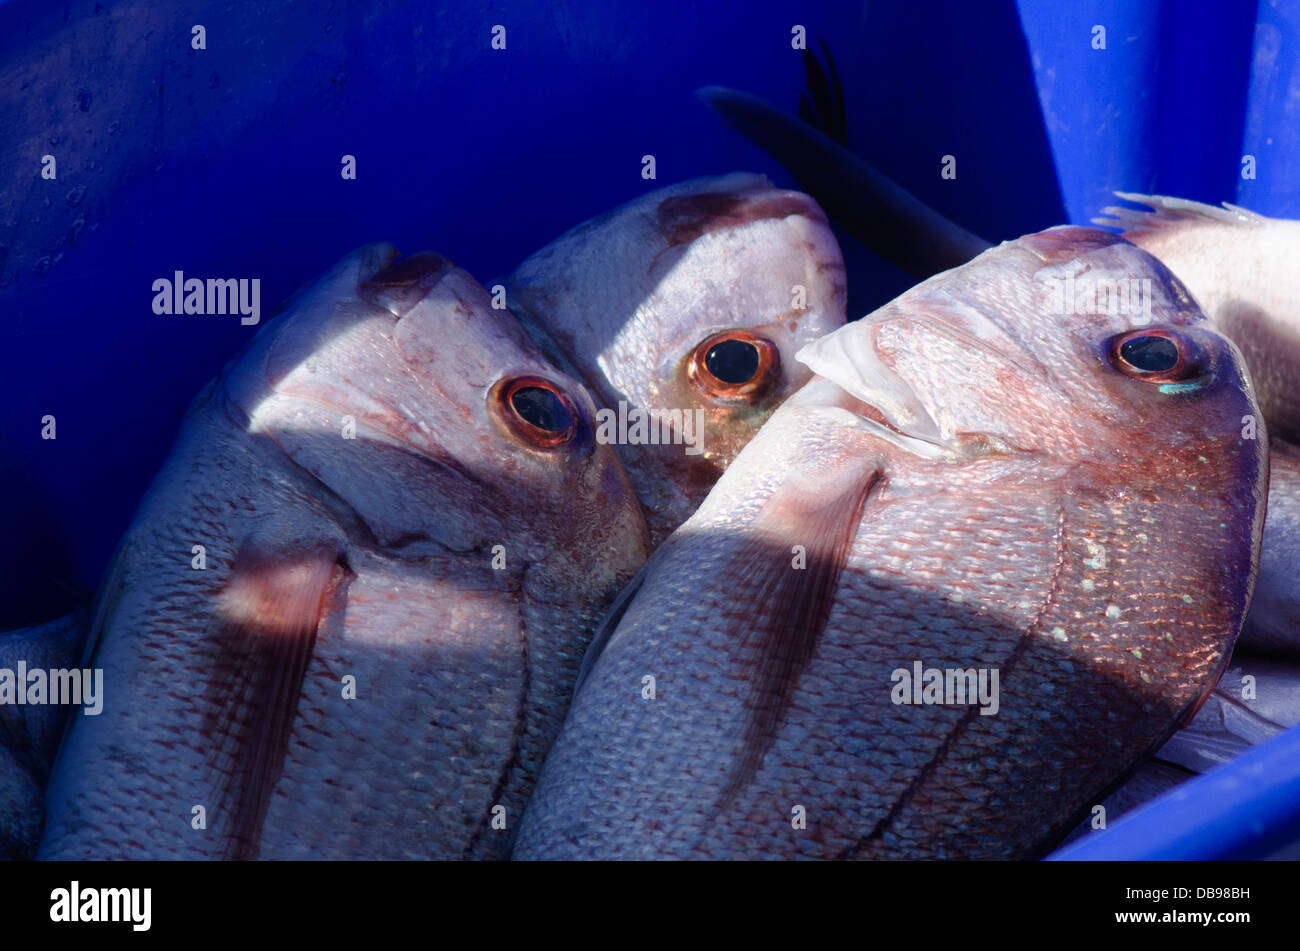 Fresh Snapper fish in a blue box with ice on fishing boat. Stock Photo